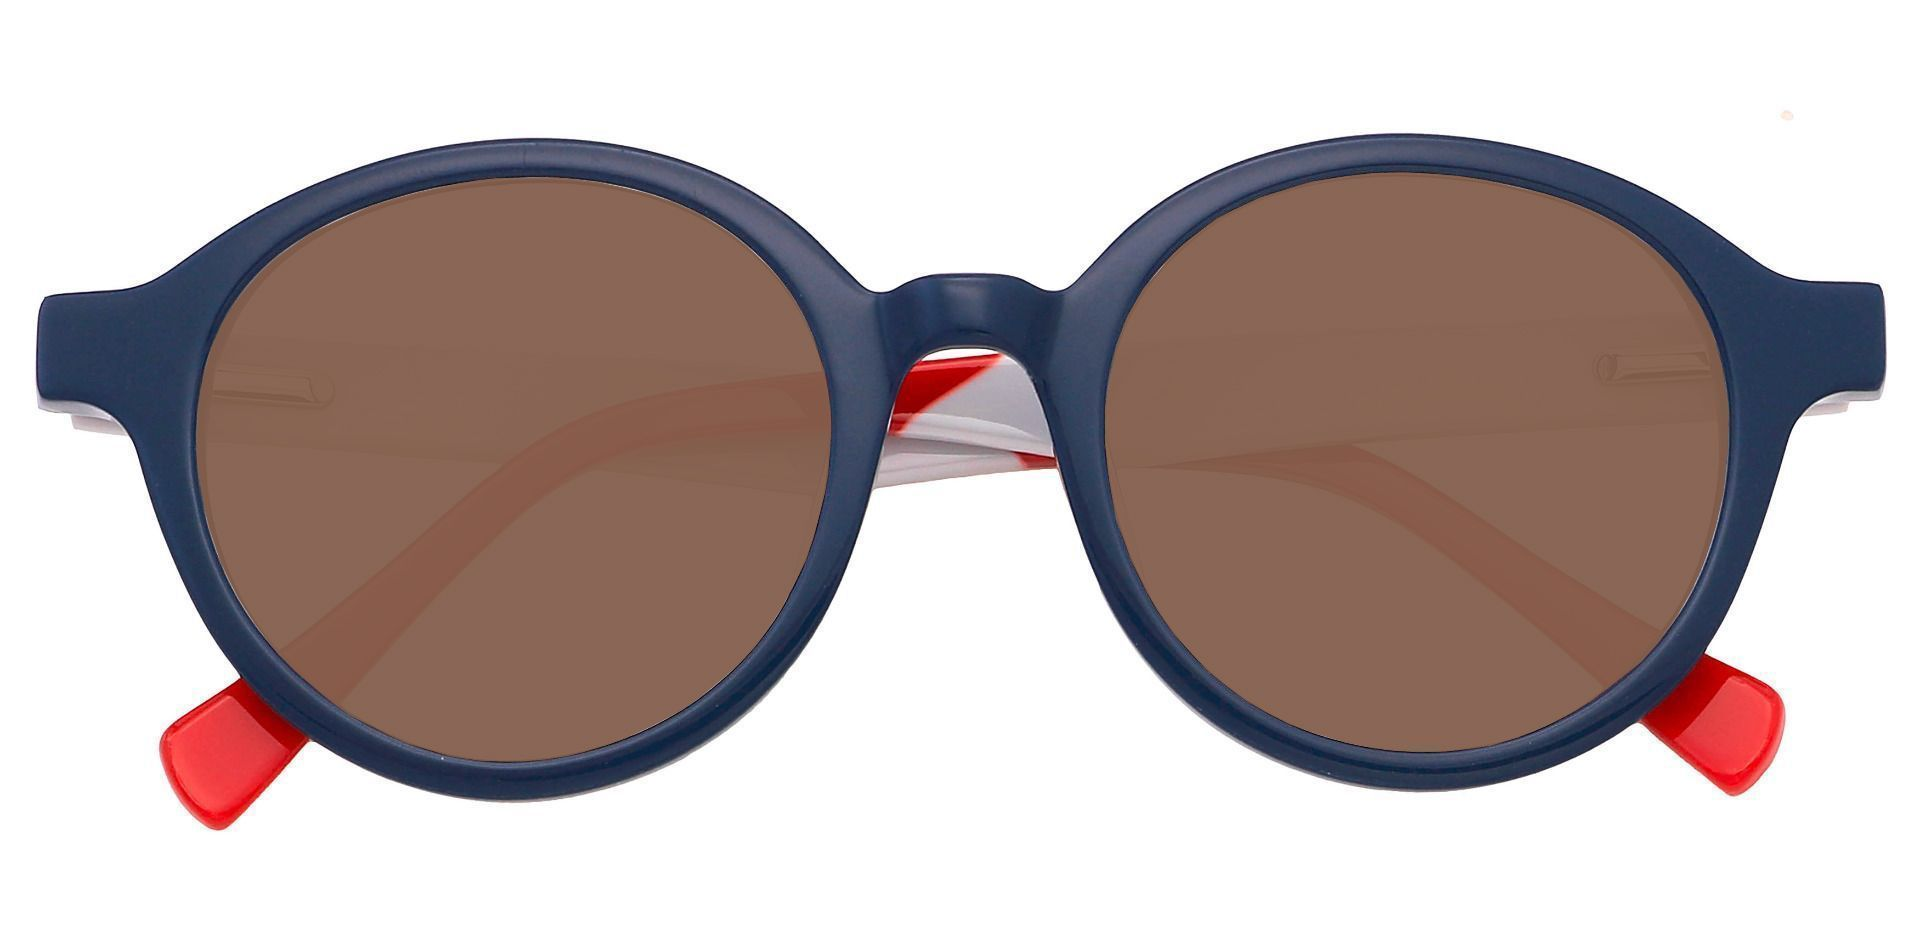 Dudley Round Reading Sunglasses - Blue Frame With Brown Lenses